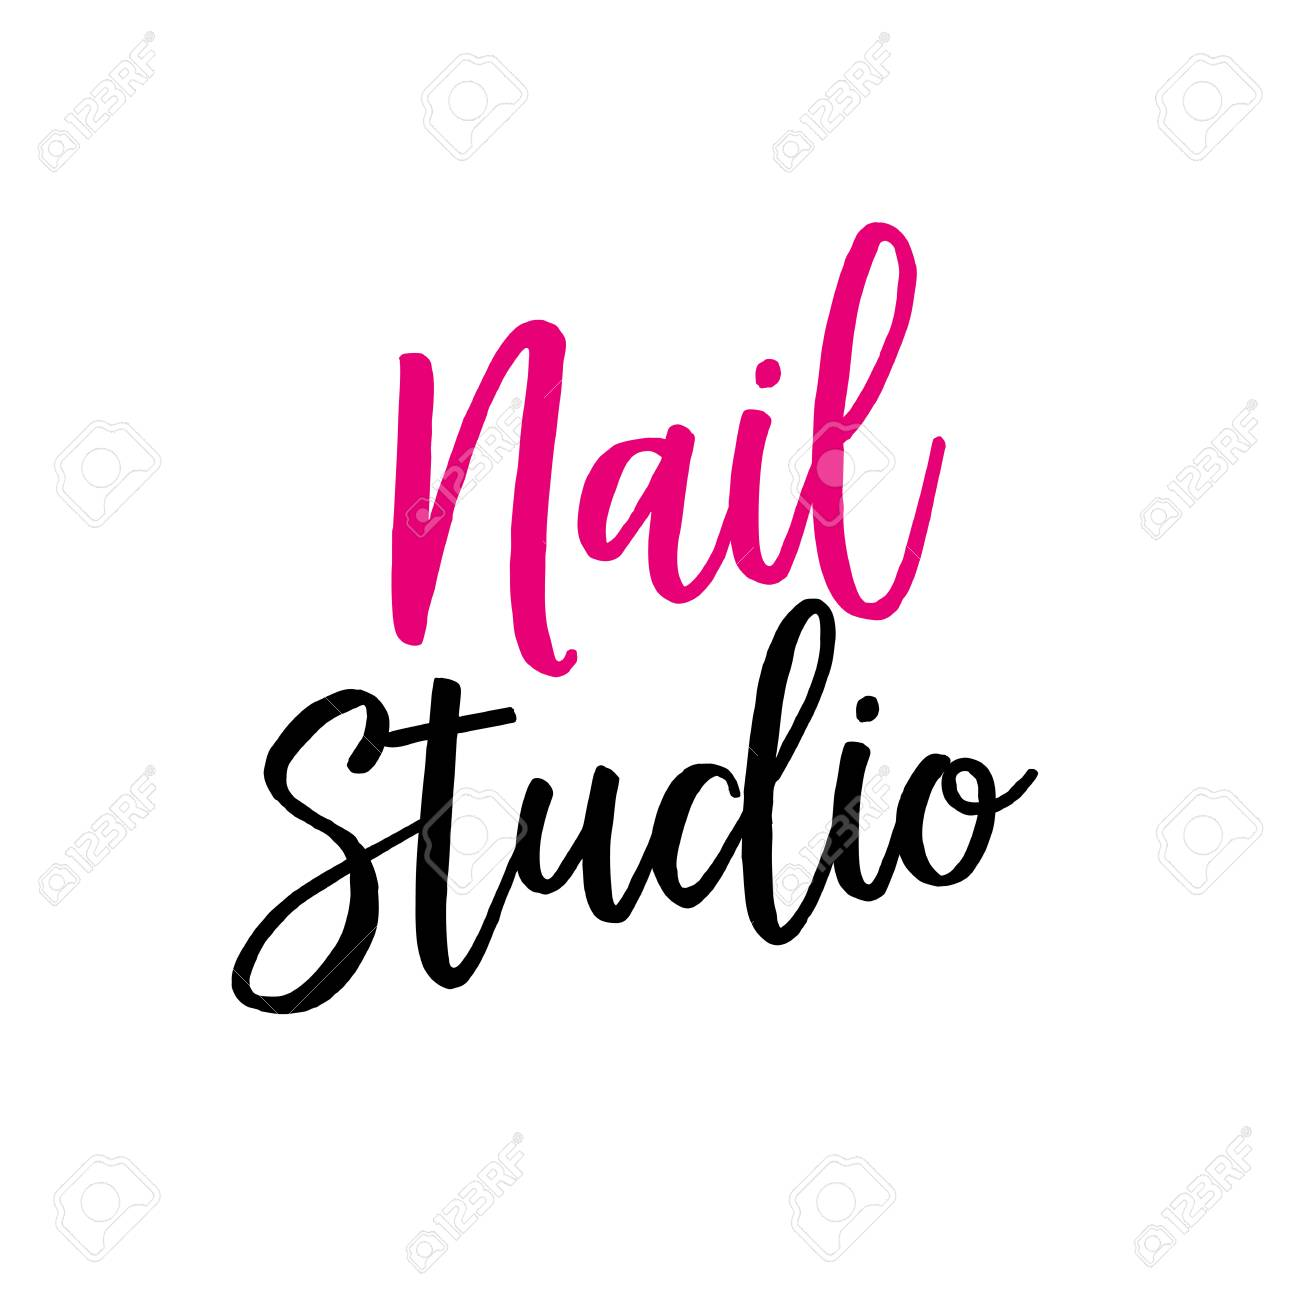 nail studio lettering for logo designs royalty free cliparts rh 123rf com mail logo nail logix